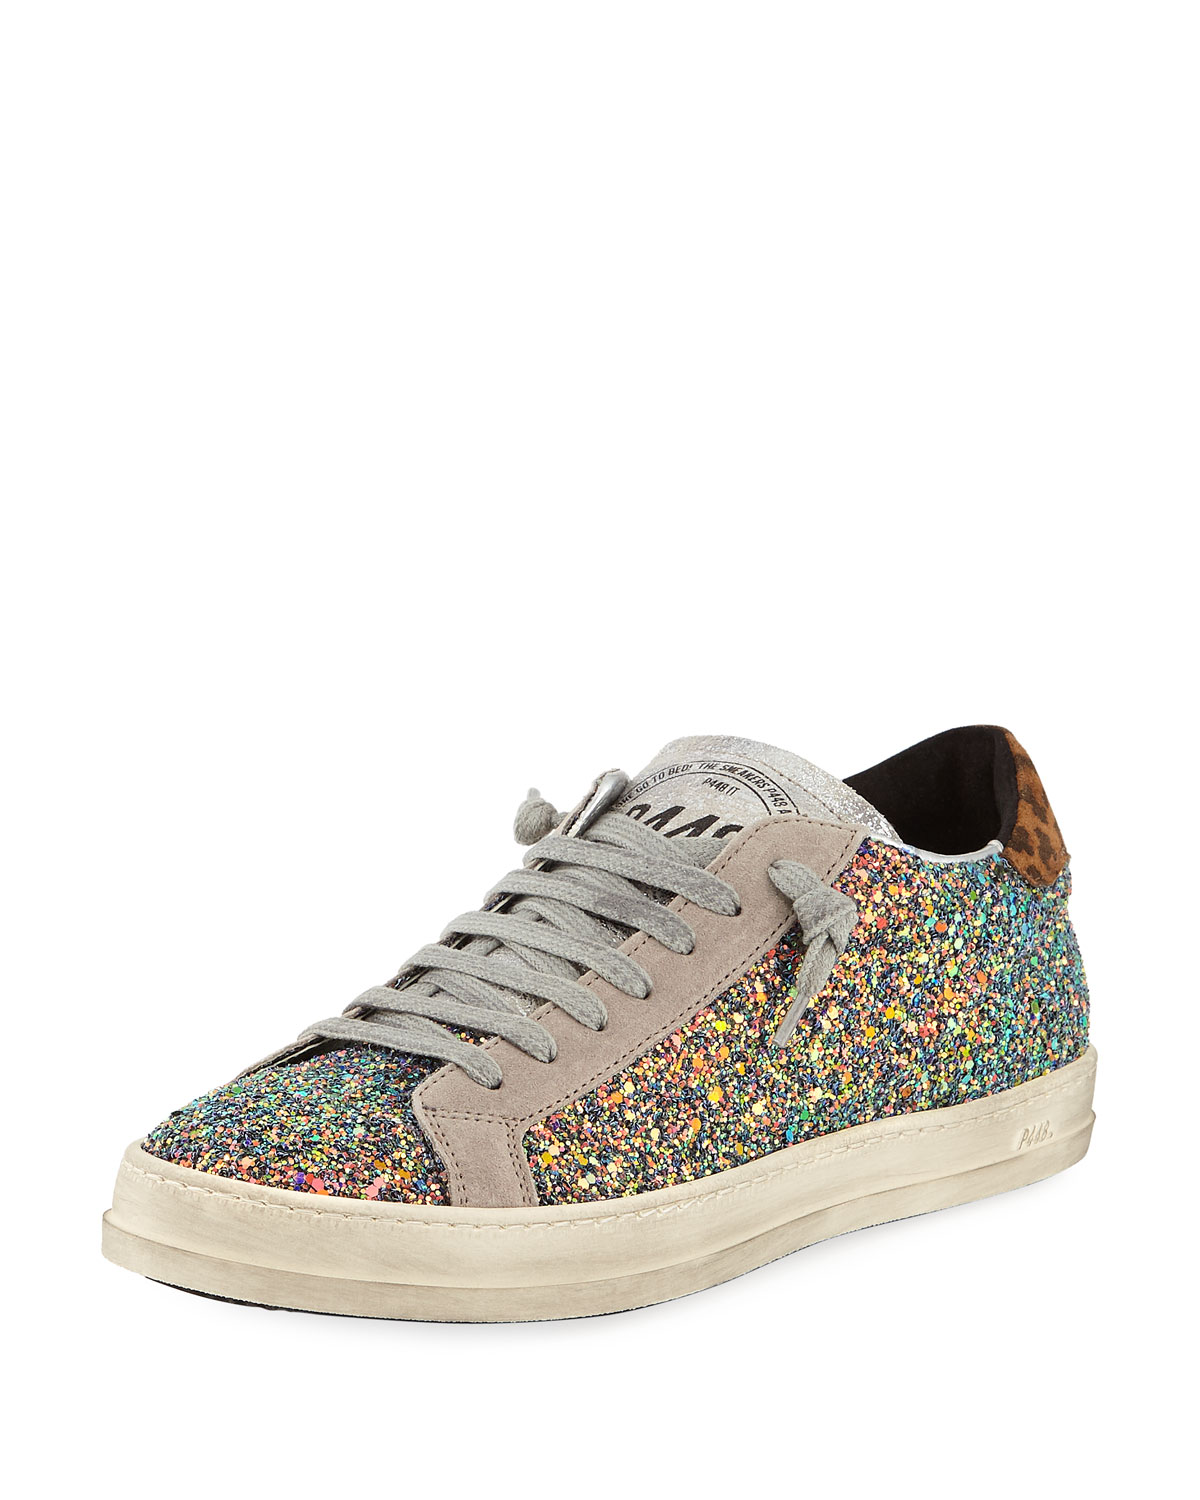 508c82aa8946 P448 John Glitter Platform Low-Top Sneakers